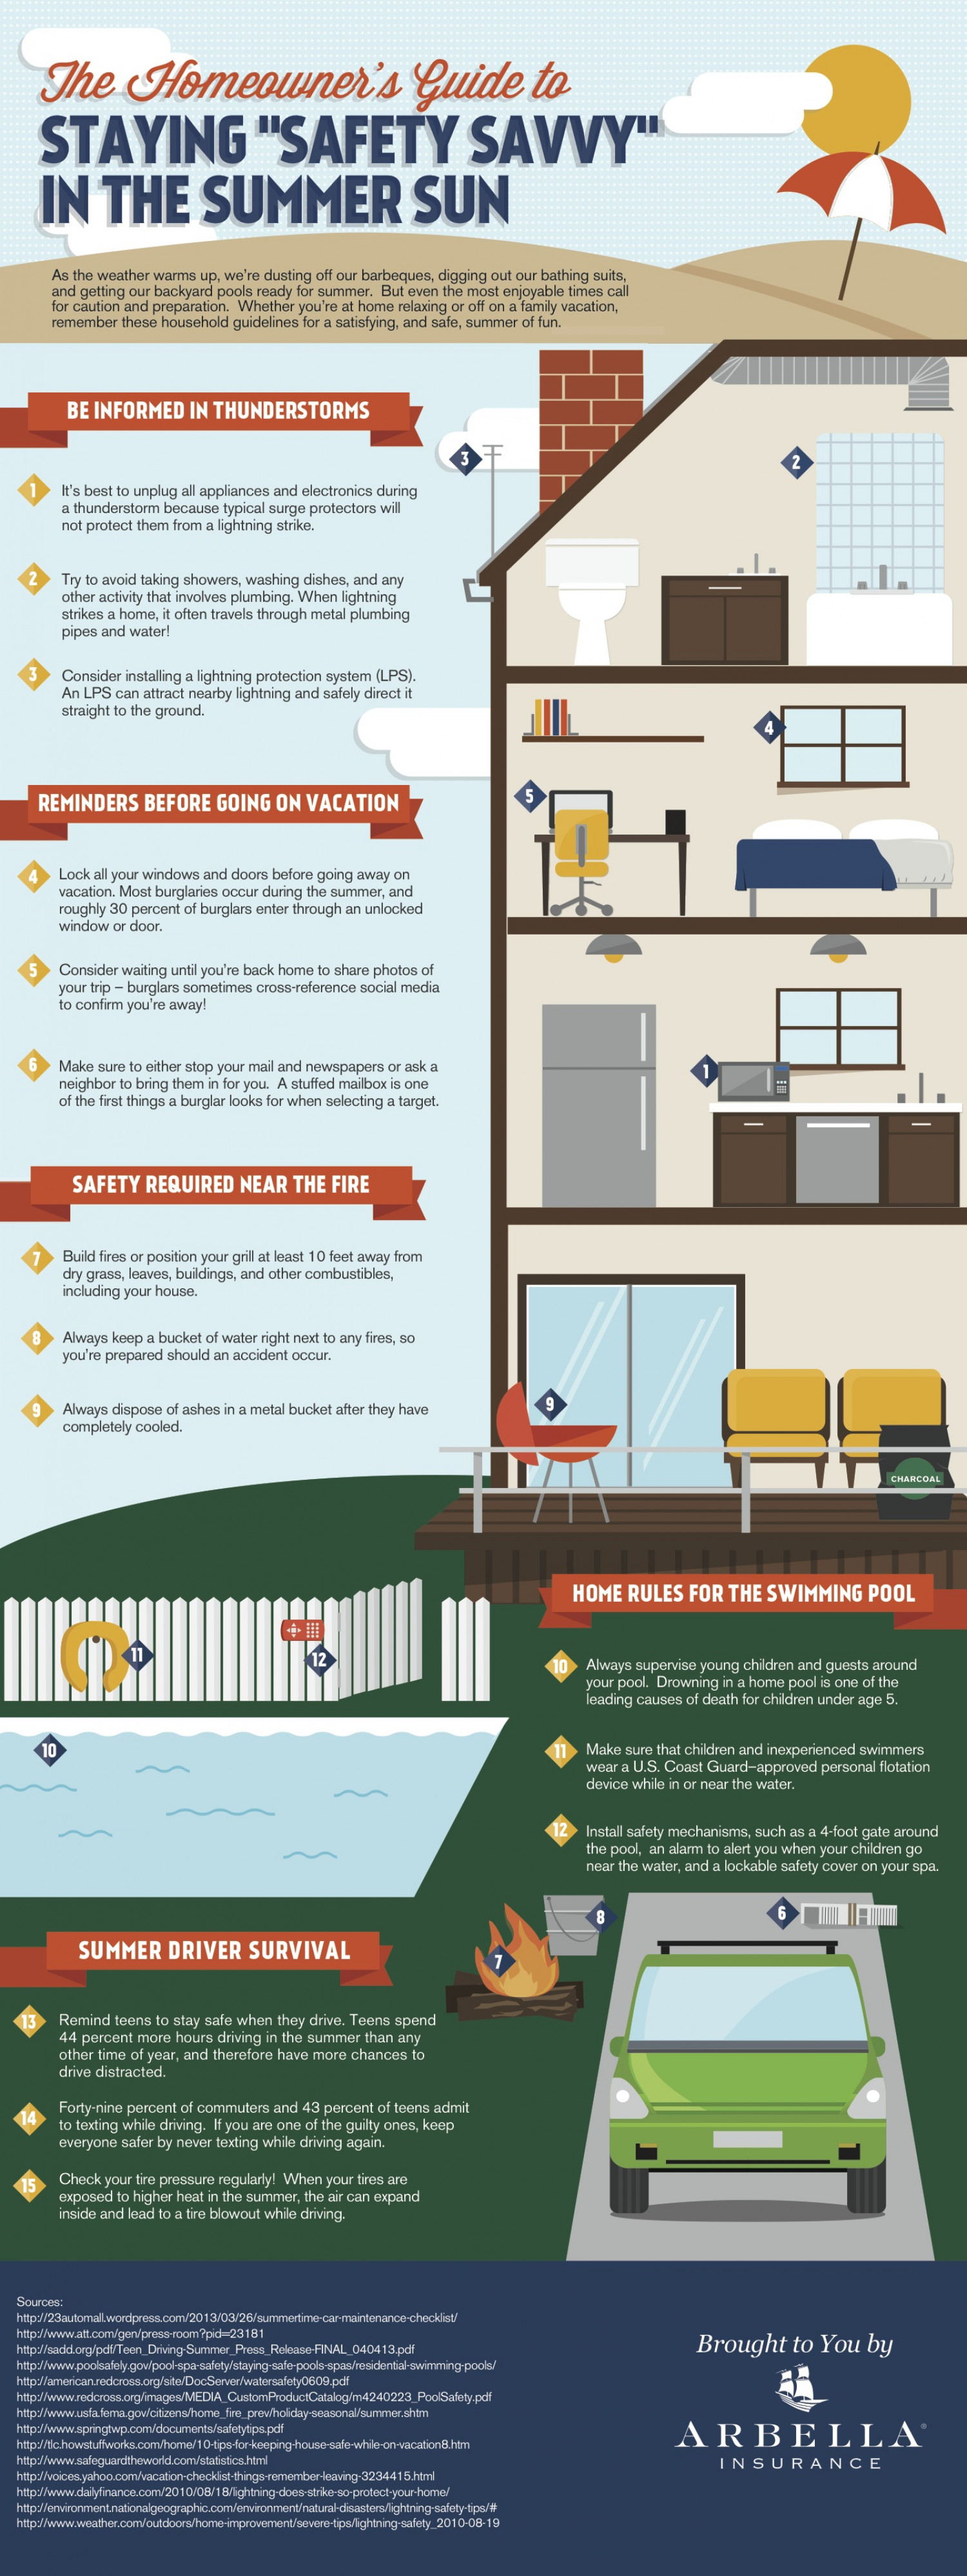 "The Homeowner's Guide to Staying ""Safety Savvy"" in the Summer Sun Infographic"